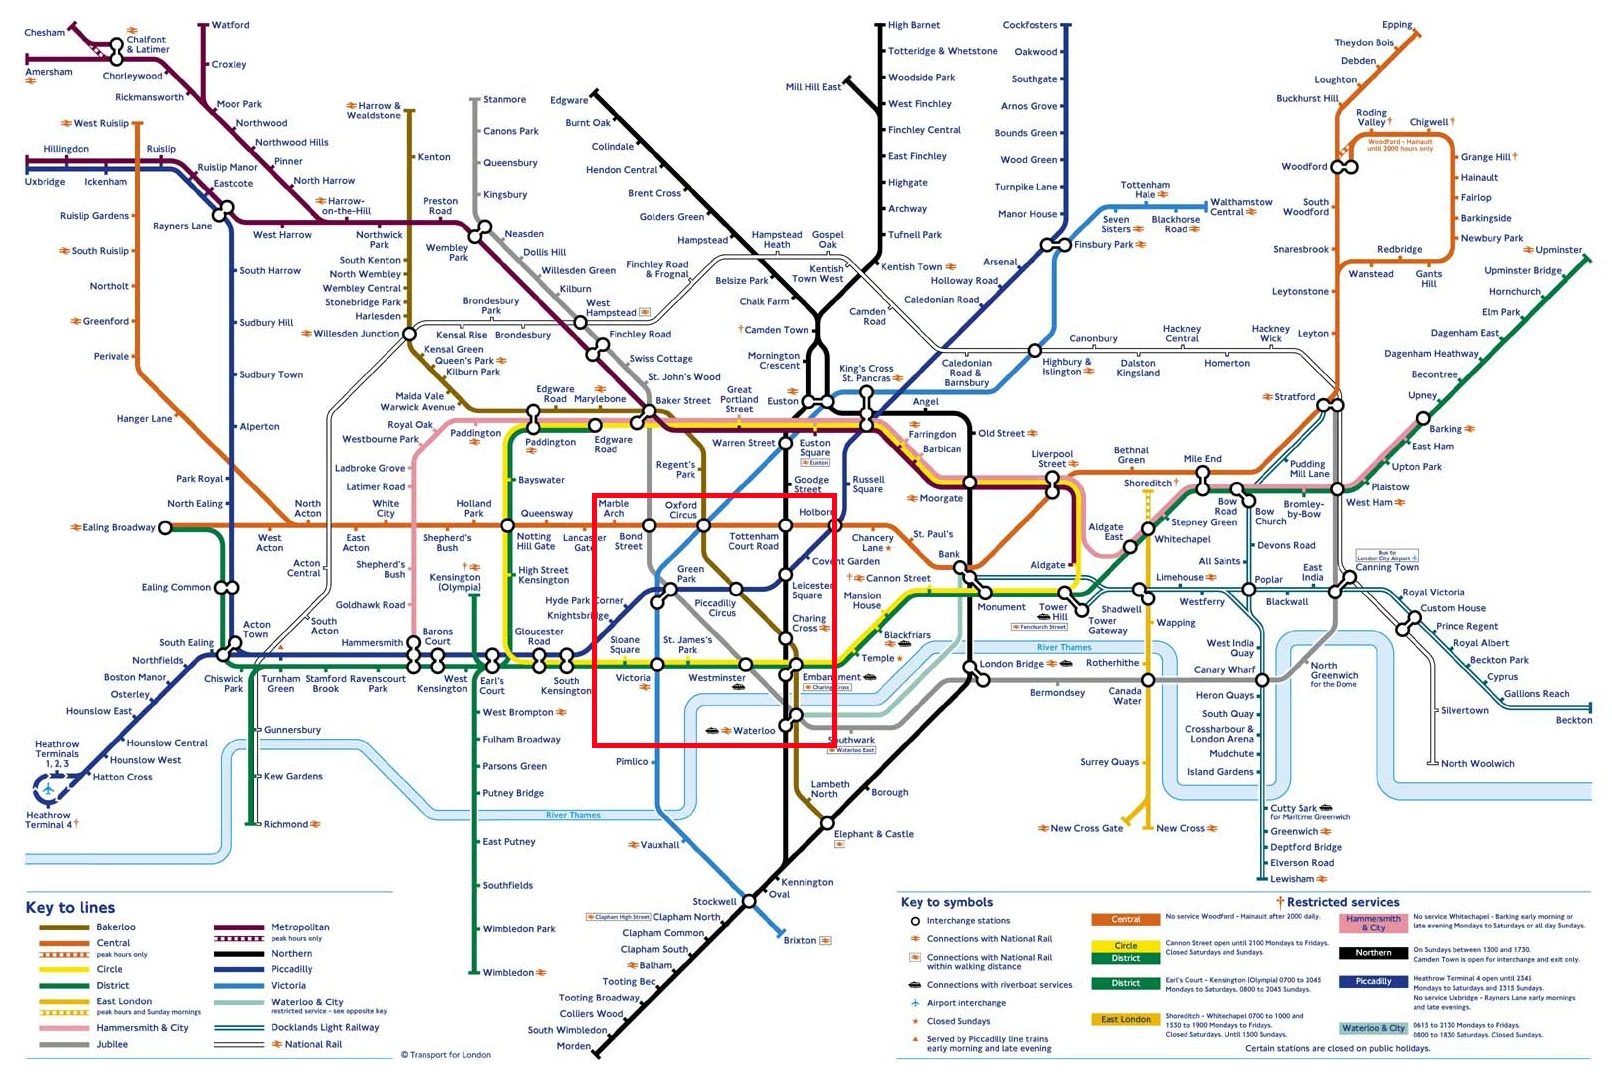 Victoria Station London Tube Map.How To Reach The Royal Society